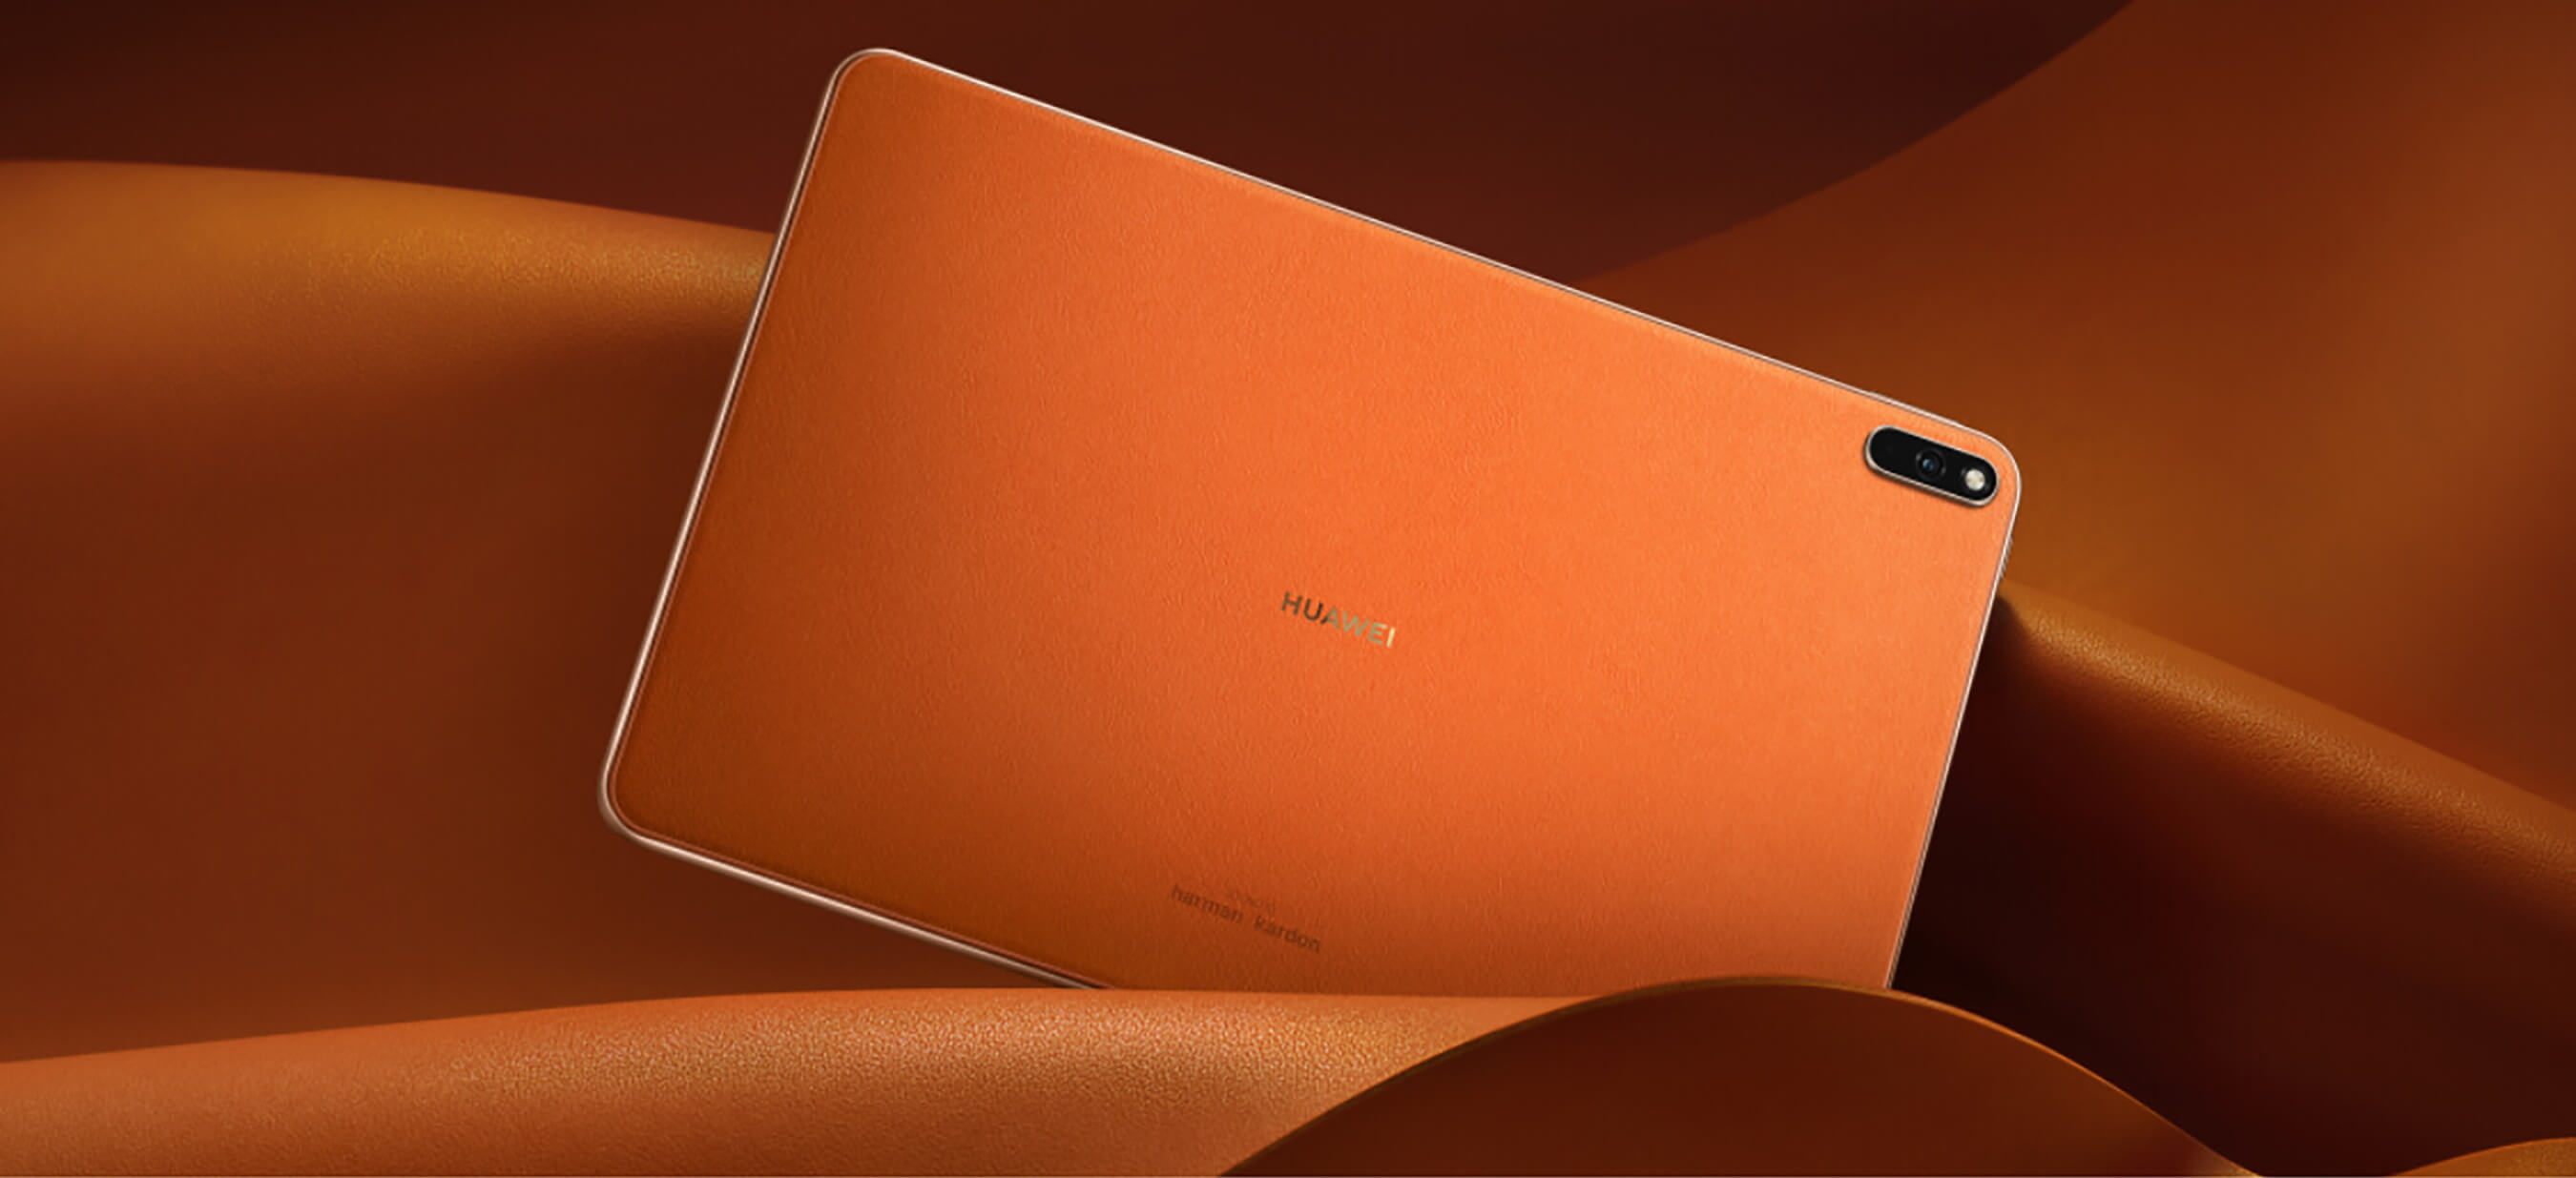 huawei matepad pro 5g color orange